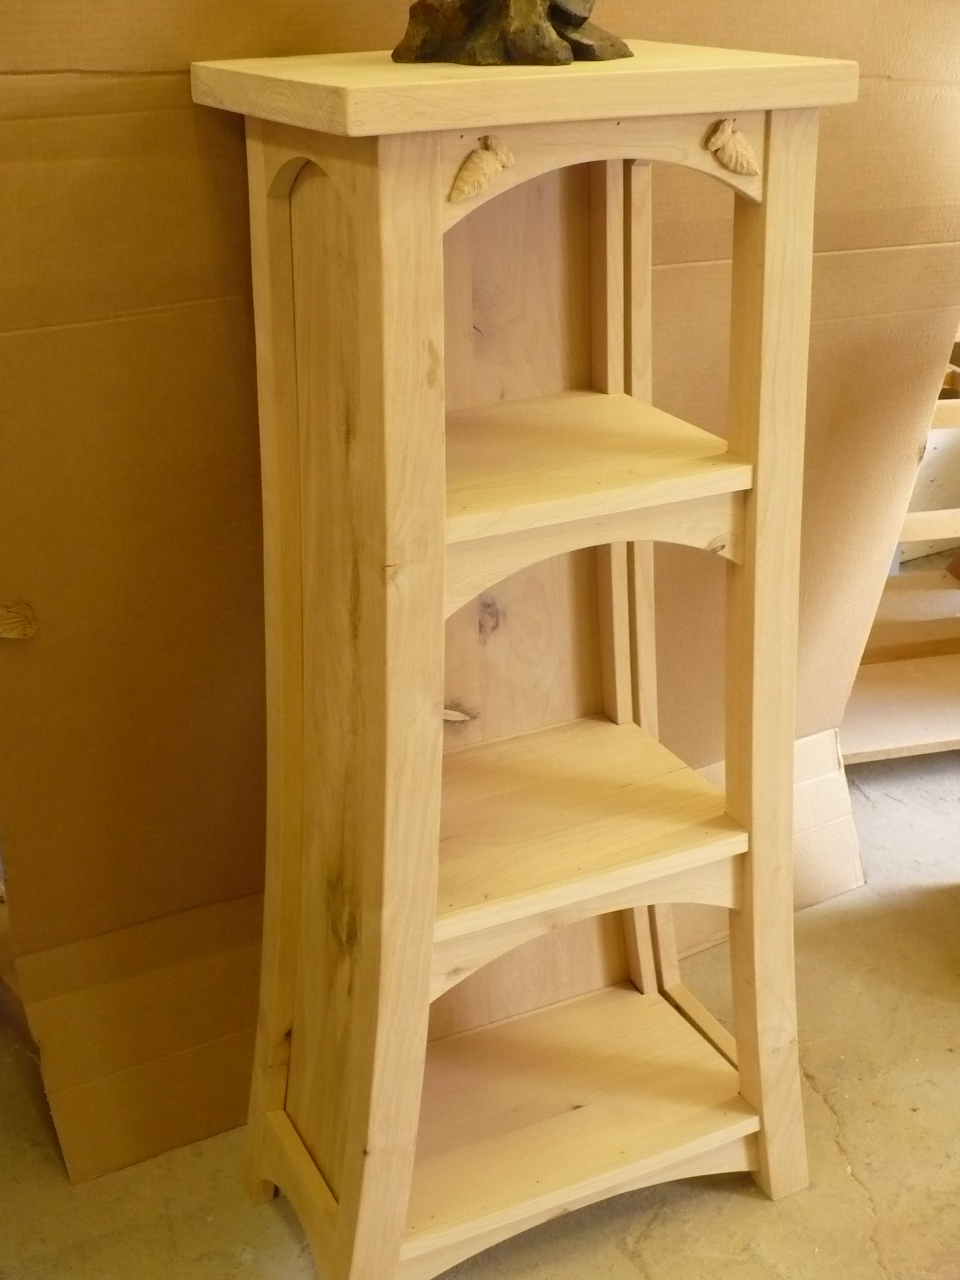 Shelf pedestal